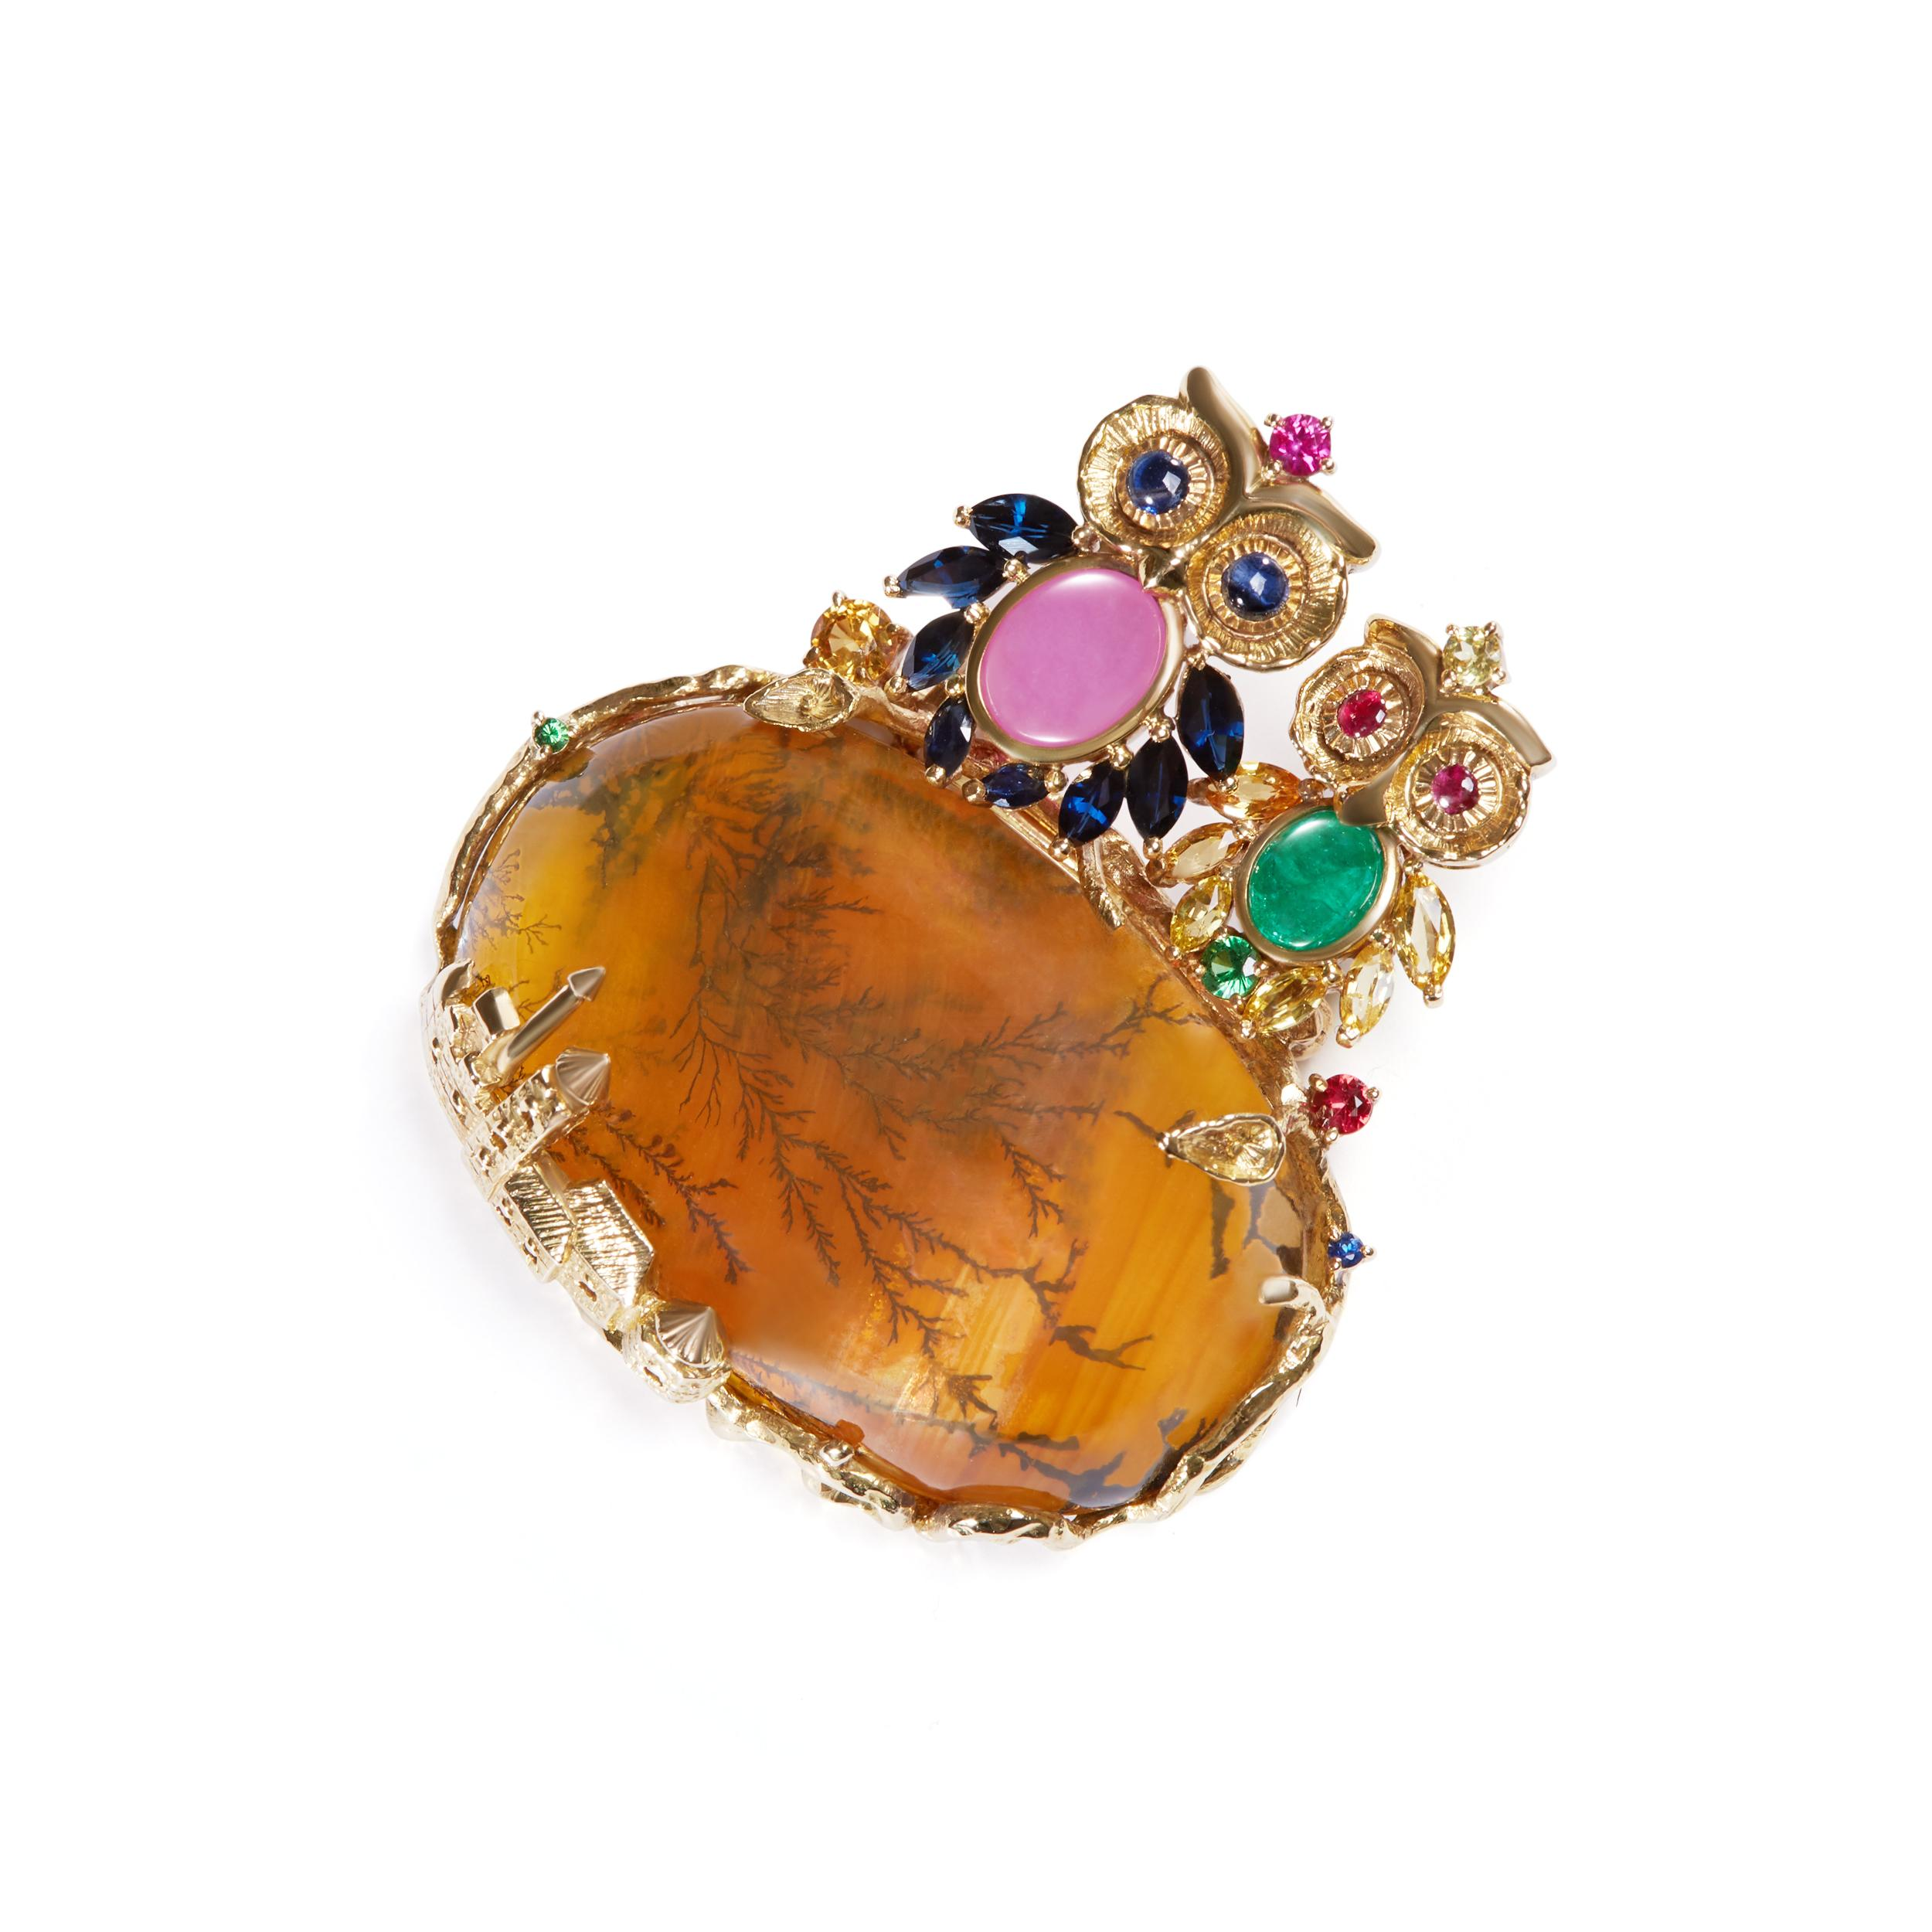 Gemstone Brooch decorated with Owl-shaped